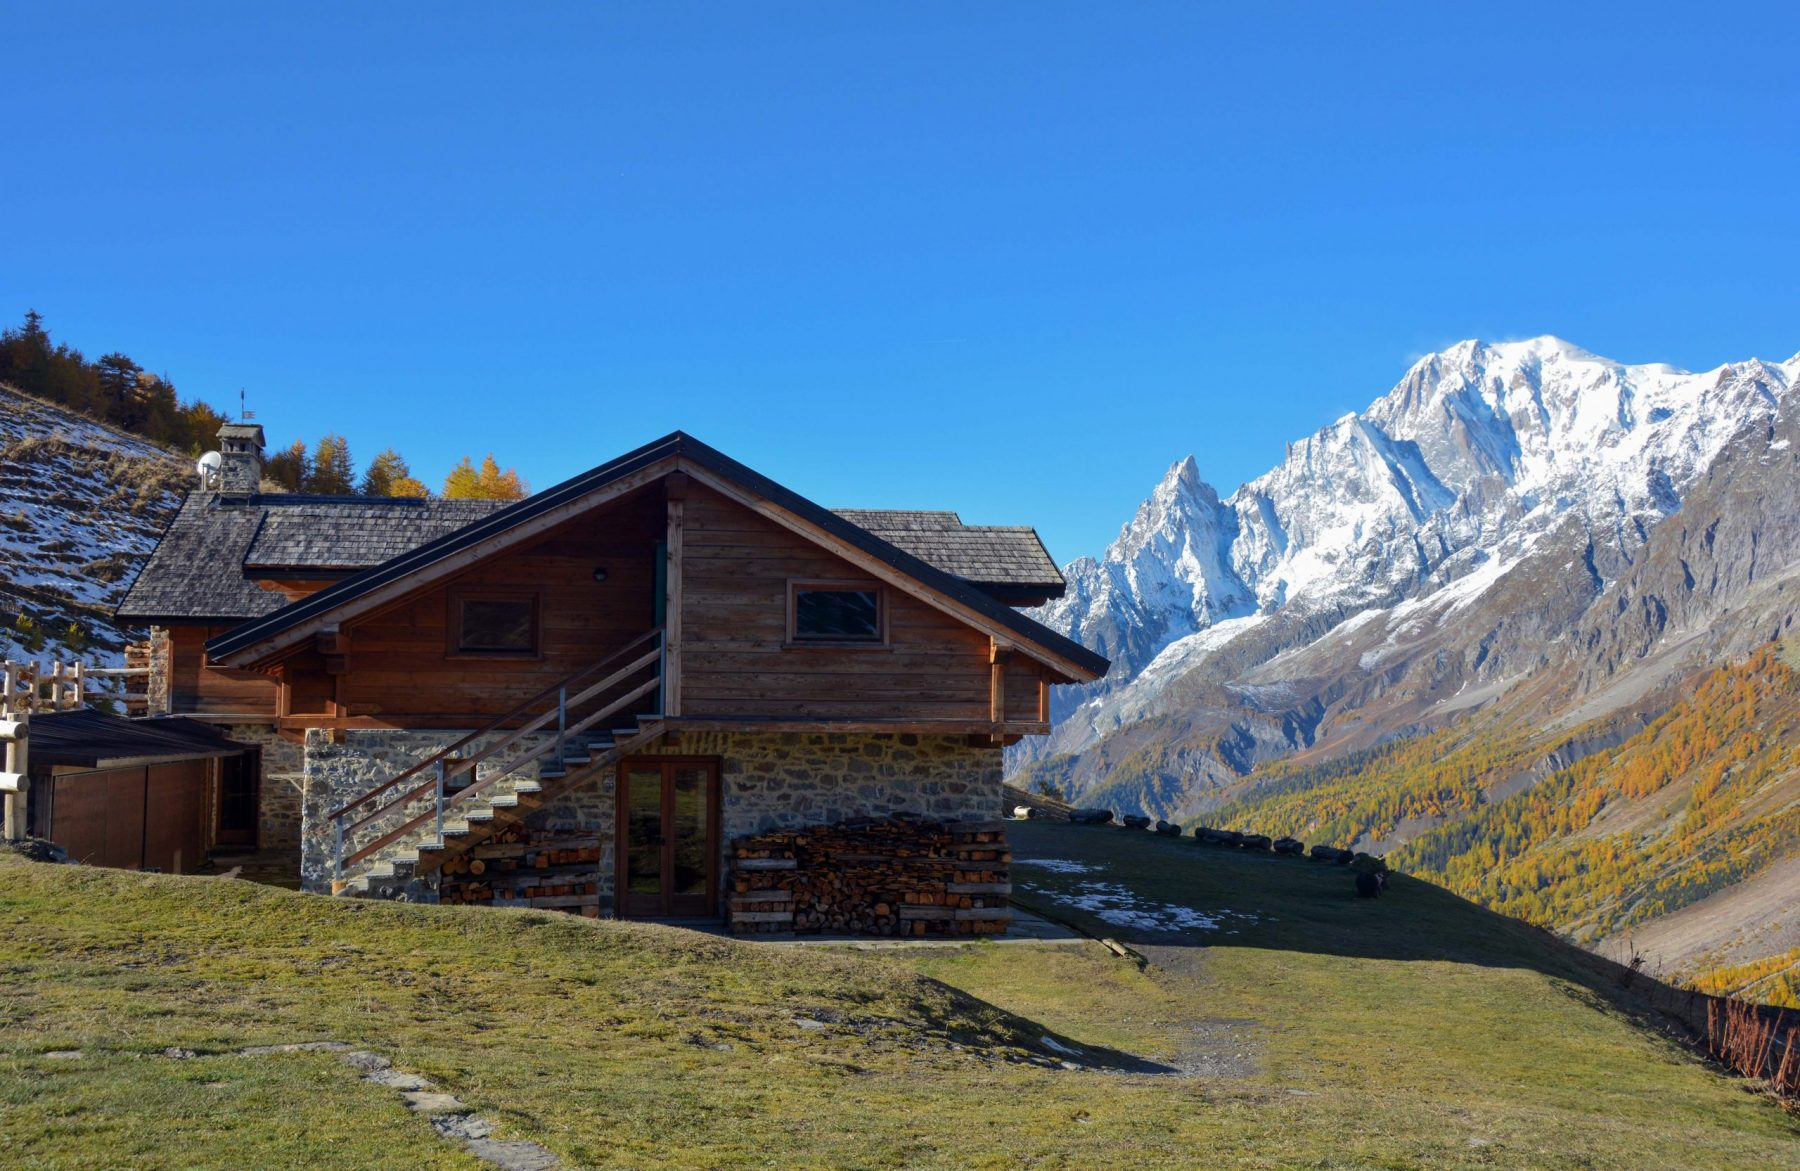 Club Alpino Italiano- Photo by giorgio Rodano - Rifugio Bonatti with views to the Monte Bianco. The plans for reopening the mountain huts (rifugios) during summer in the Italian Alps in times of COVID19.